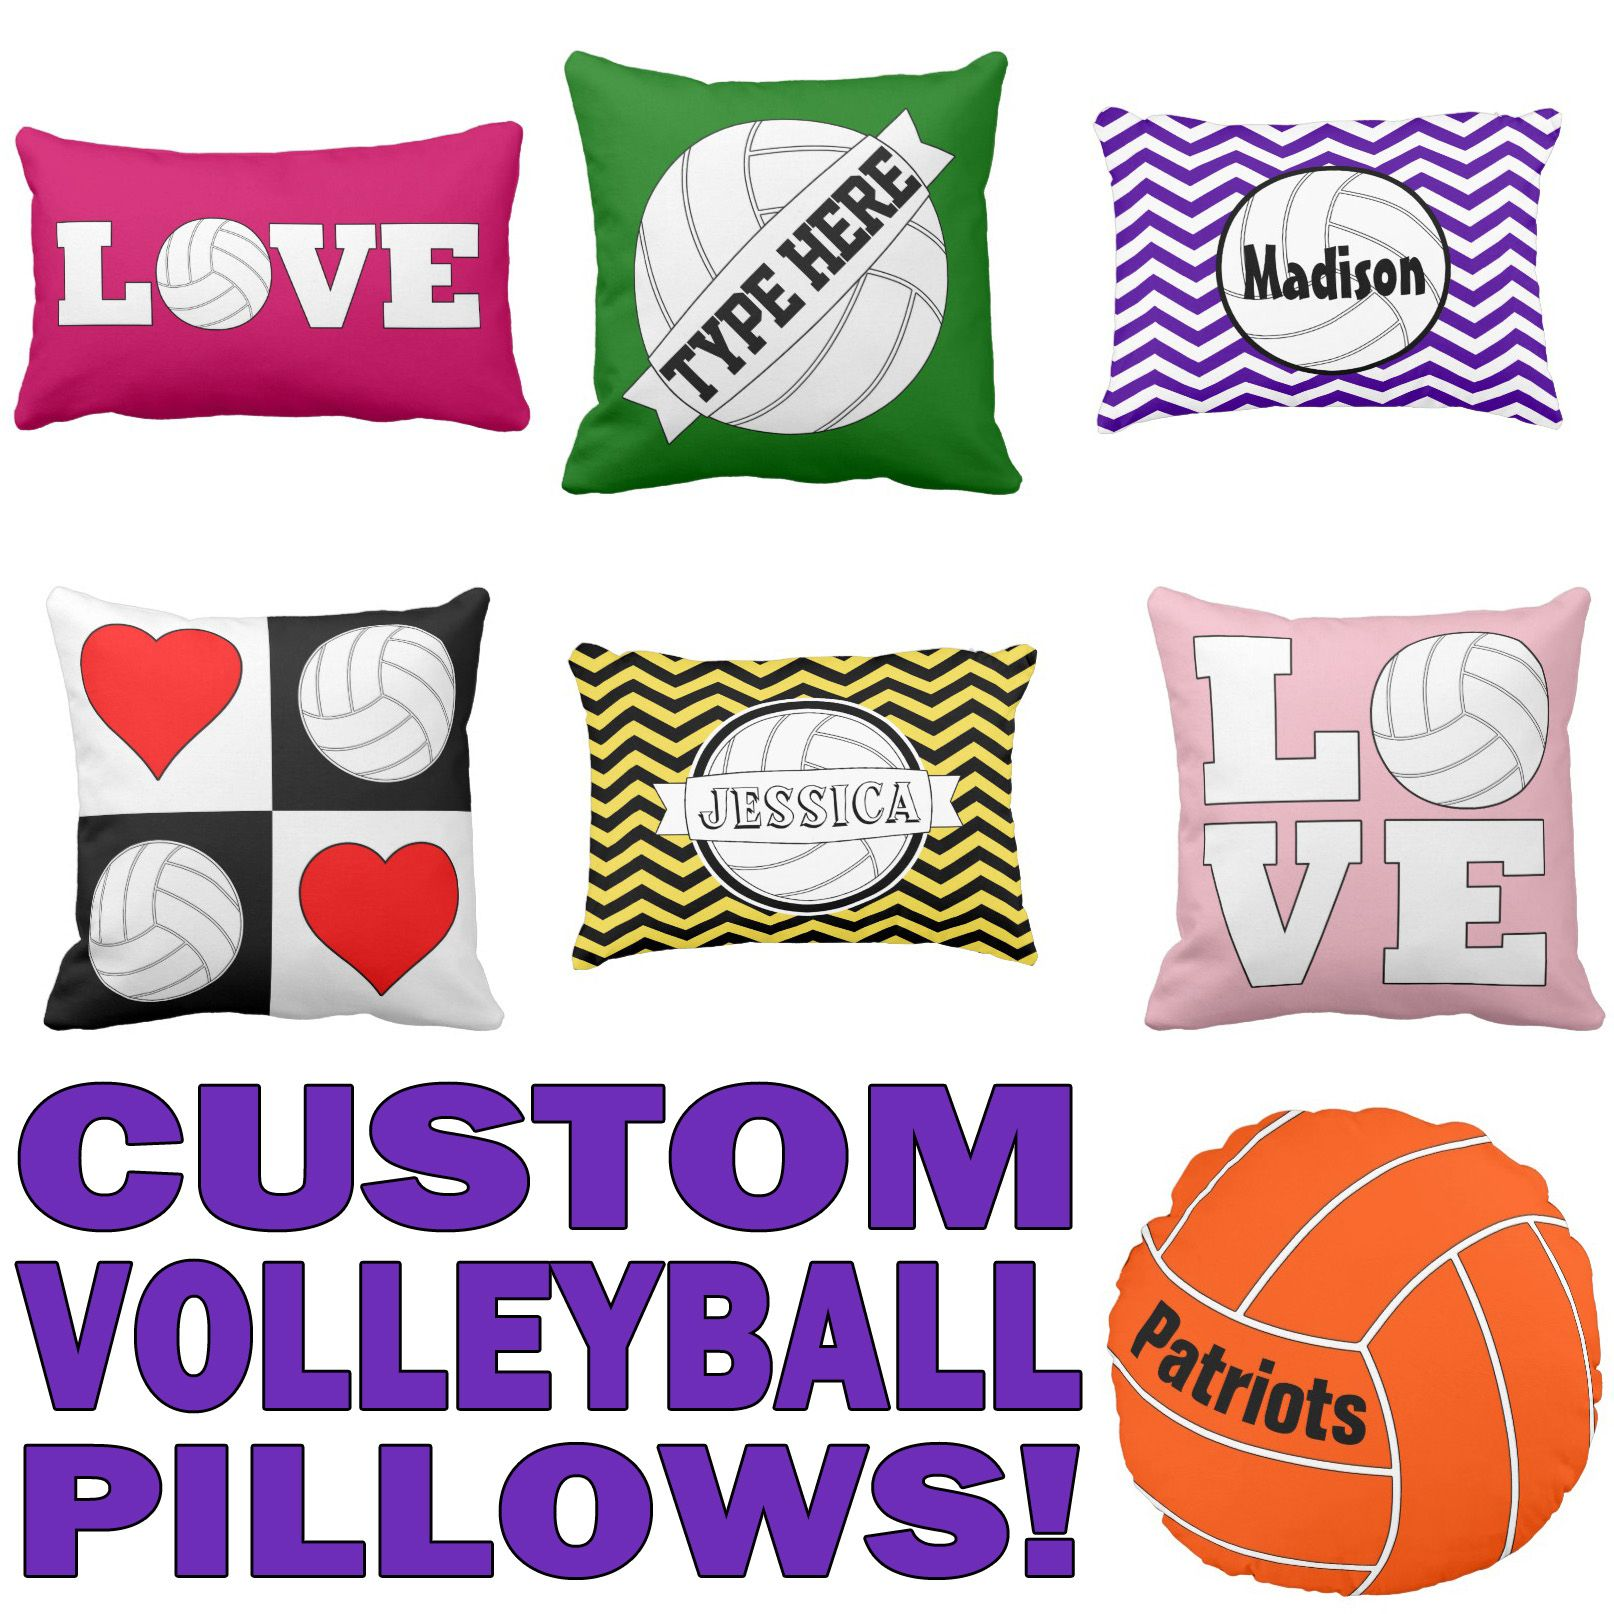 Create Your Own Customized Volleyball Pillows Volleyball Pillow Zazzle Custom Volleyball Pillows Volleyball Players